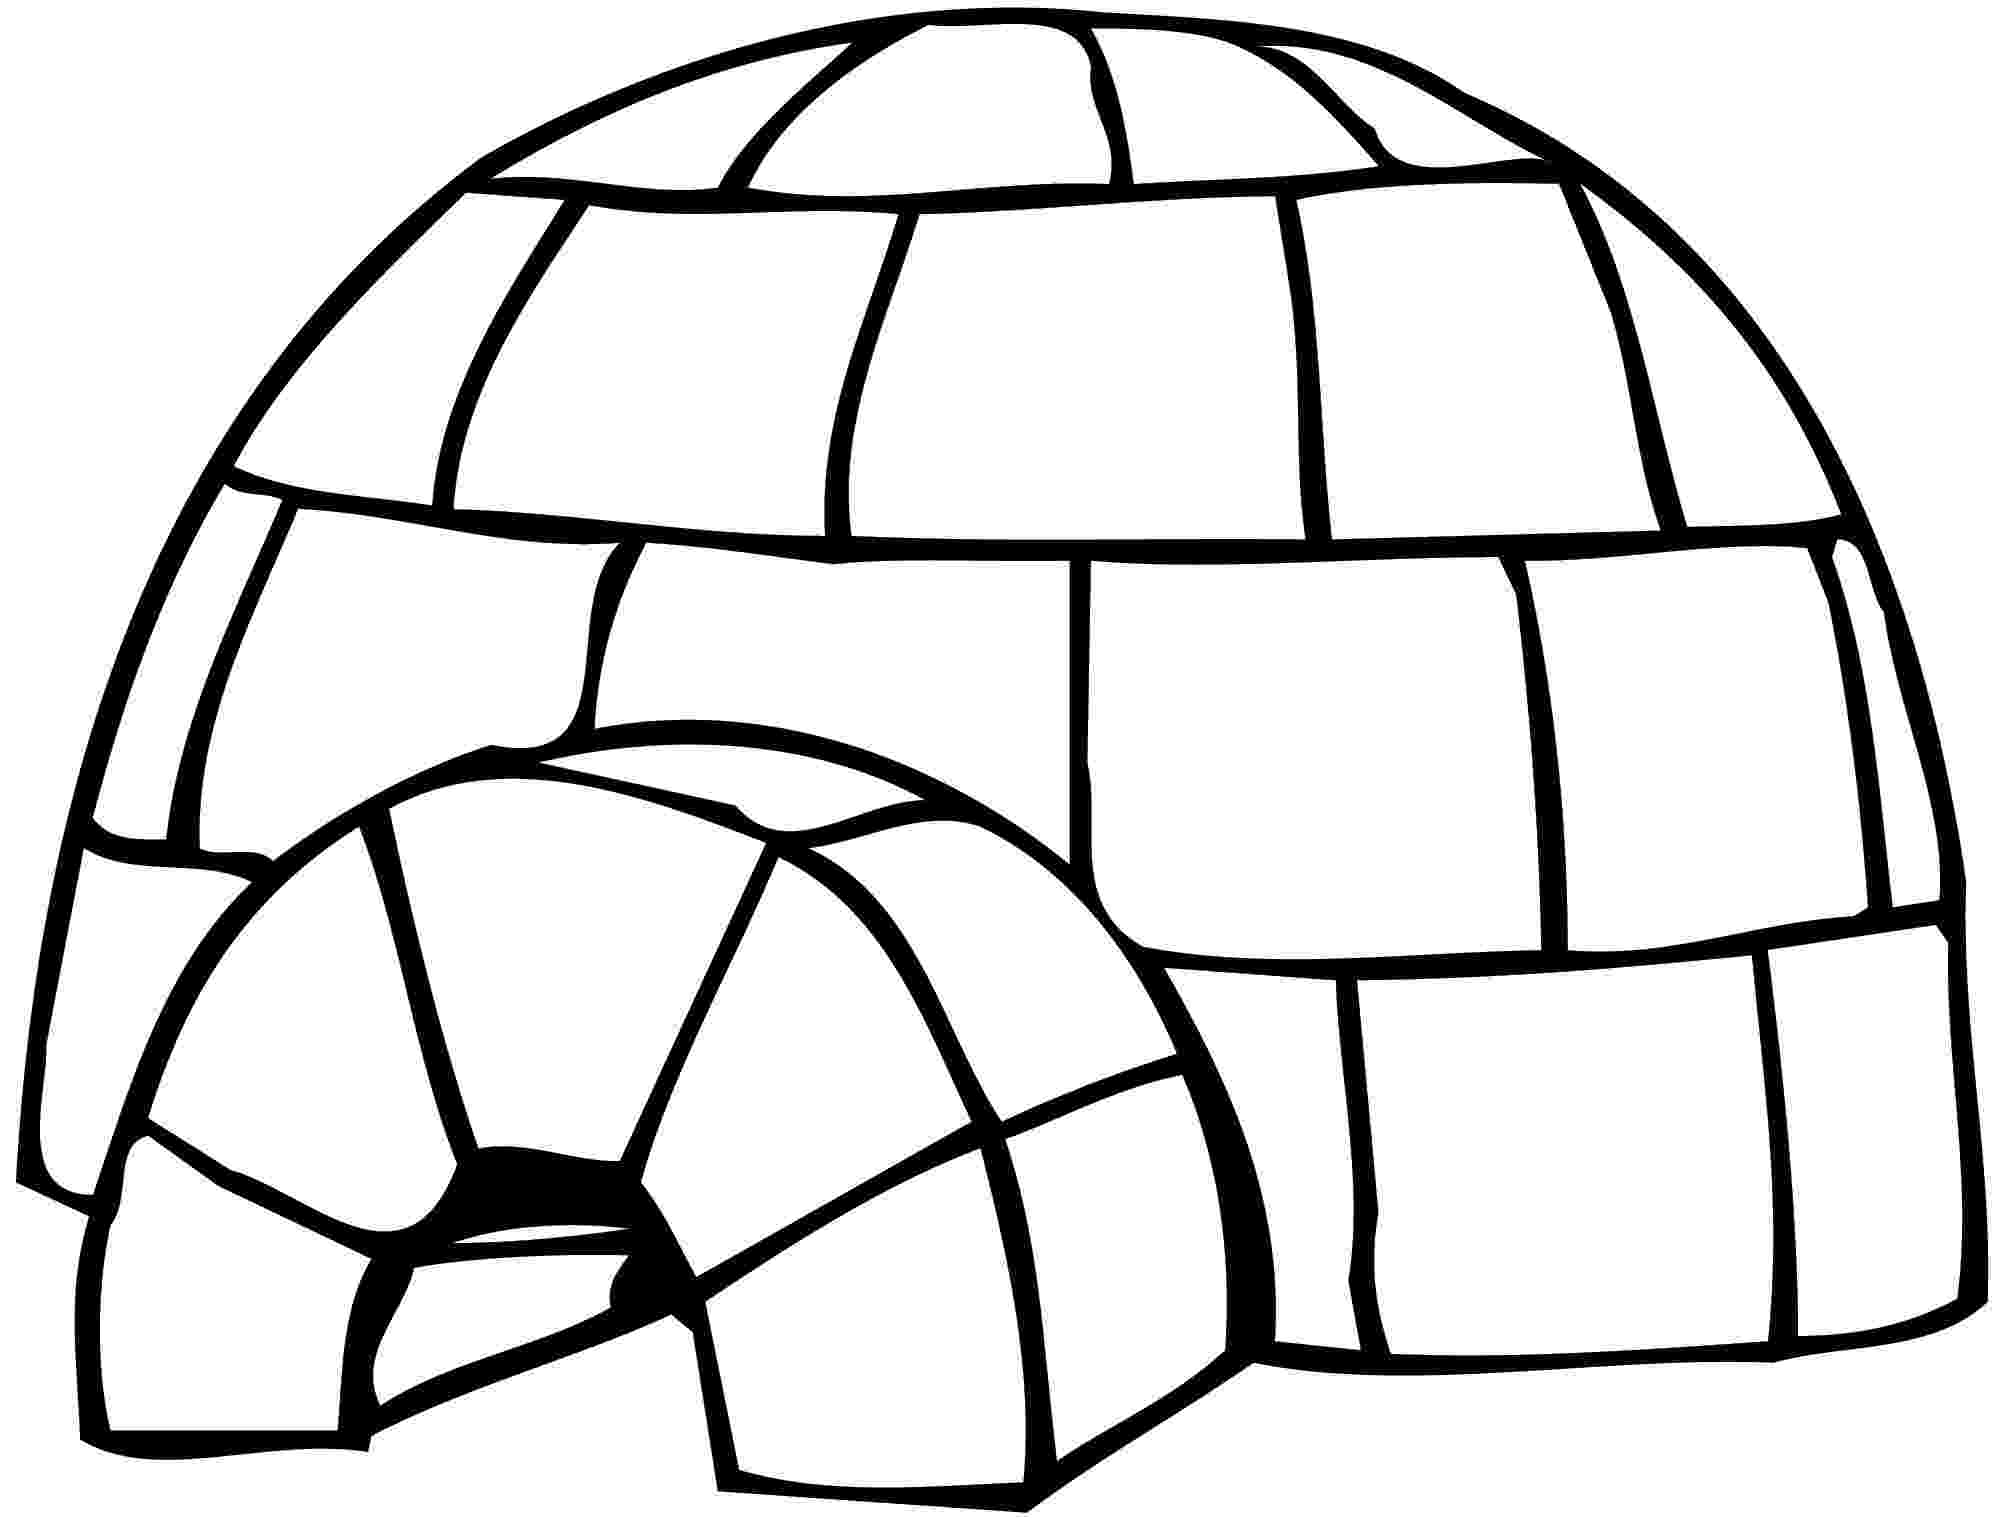 igloo coloring page igloo coloring page at getcoloringscom free printable page igloo coloring